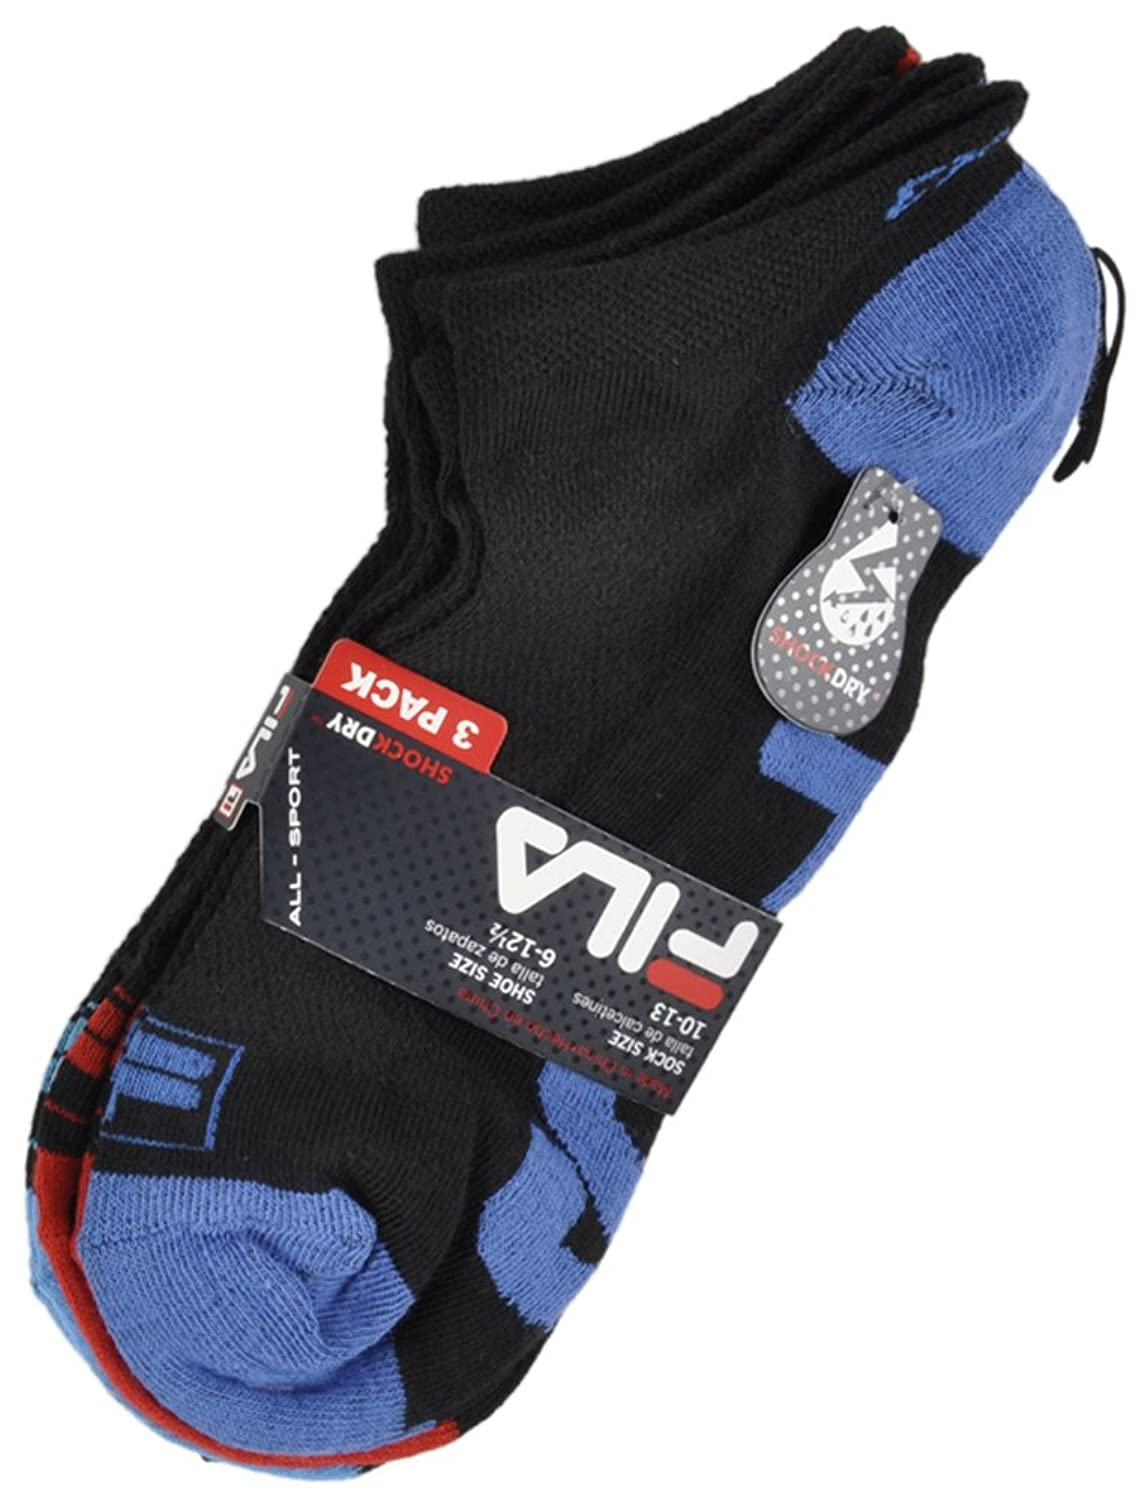 Fila Ankle Socks All-Sport Shock Dry 3-Pack in Black at Amazon Mens Clothing store: